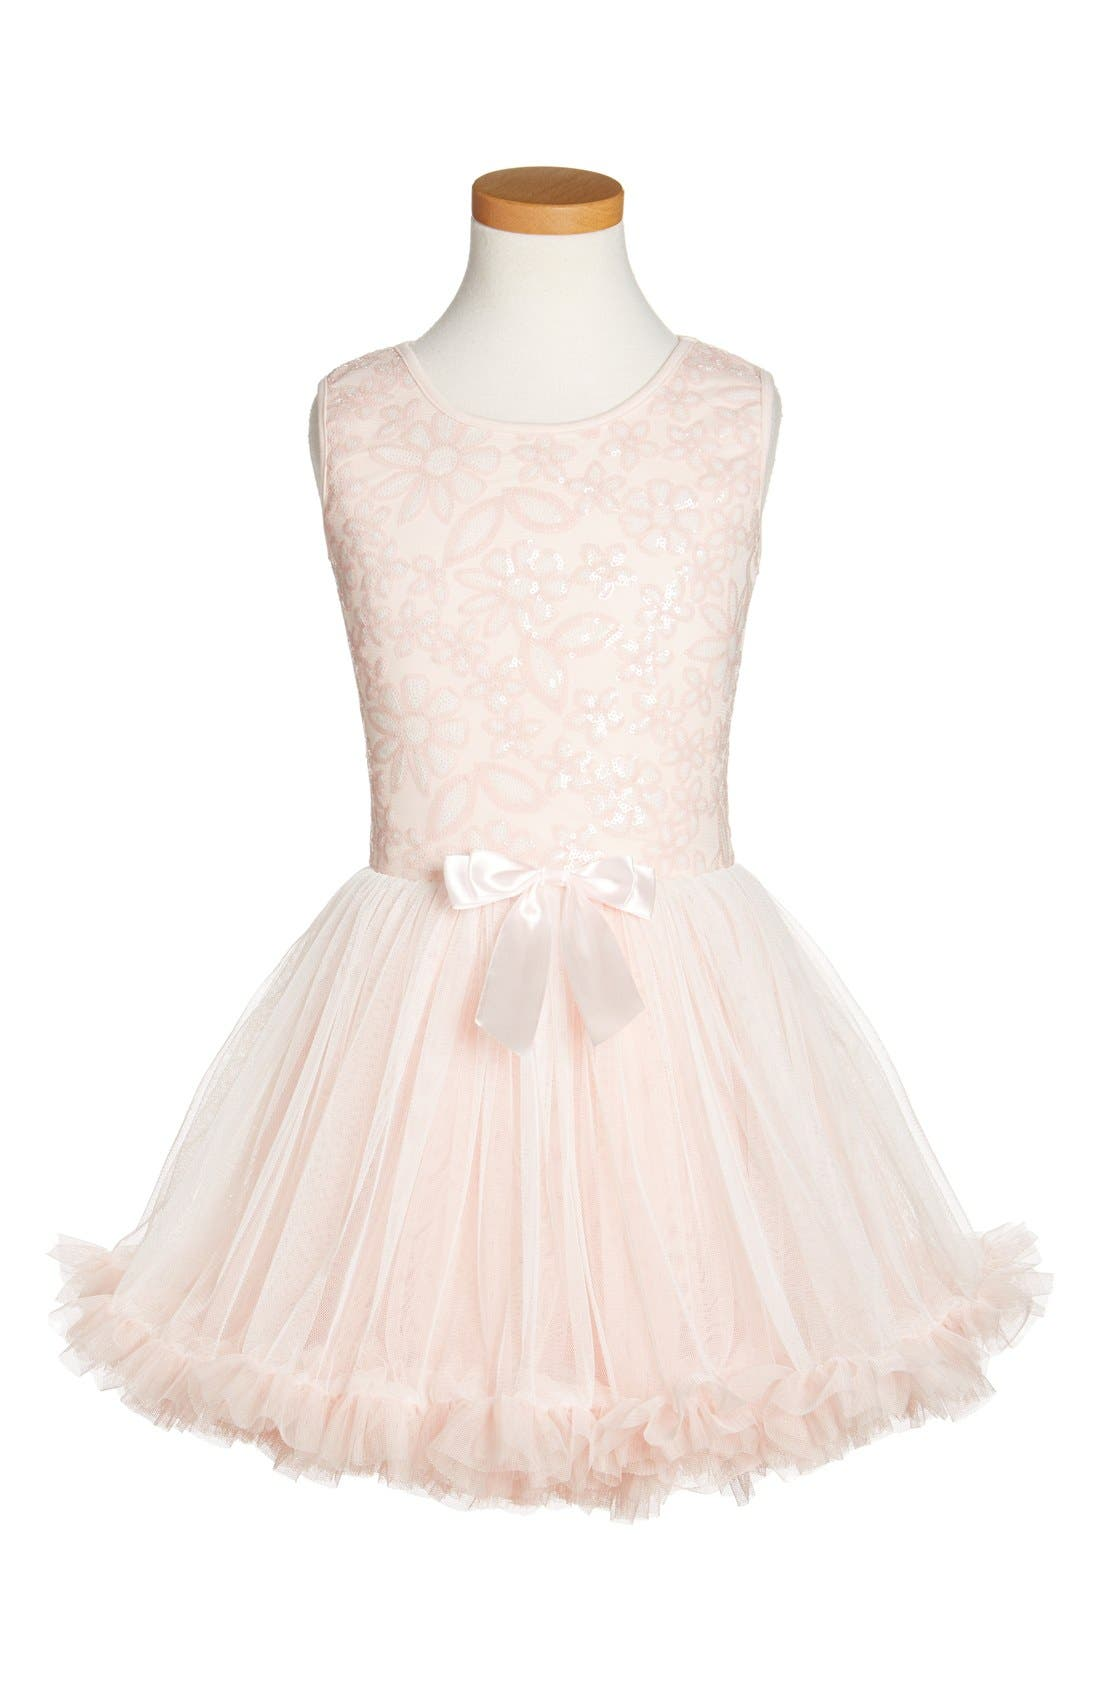 Popatu 'Peach Daisy' Sequin Pettidress (Toddler Girls & Little Girls)